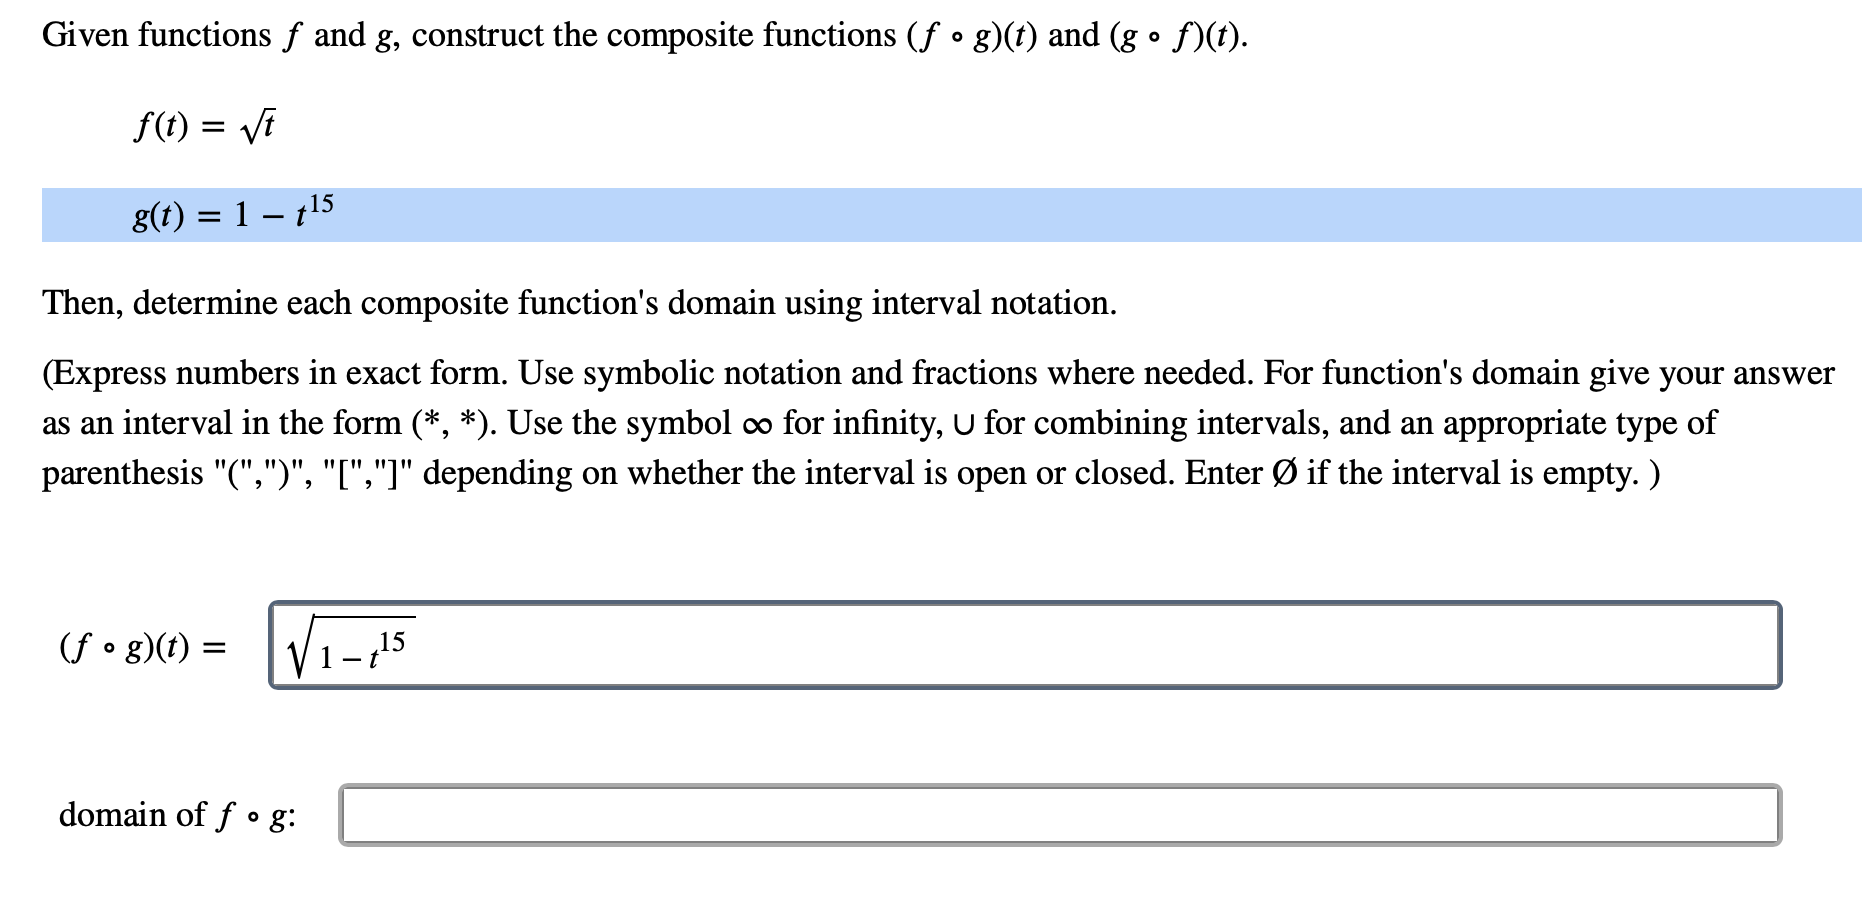 """Given functions f and g, construct the composite functions (f ° g)(t) and (g ° f)(t) O f() i g(t) 1 -15 Then, determine each composite function's domain using interval notation. (Express numbers in exact form. Use symbolic notation and fractions where needed. For function's domain give your answer as an interval in the form (*, *). Use the symbol 0o for infinity, U for combining intervals, and an appropriate type of on whether the interval is open or closed. Enter Ø if the interval is empty.) parenthesis """"("""","""")"""", """"I"""",""""]"""" depending (fo g)(f) 15 domain of fo g:"""